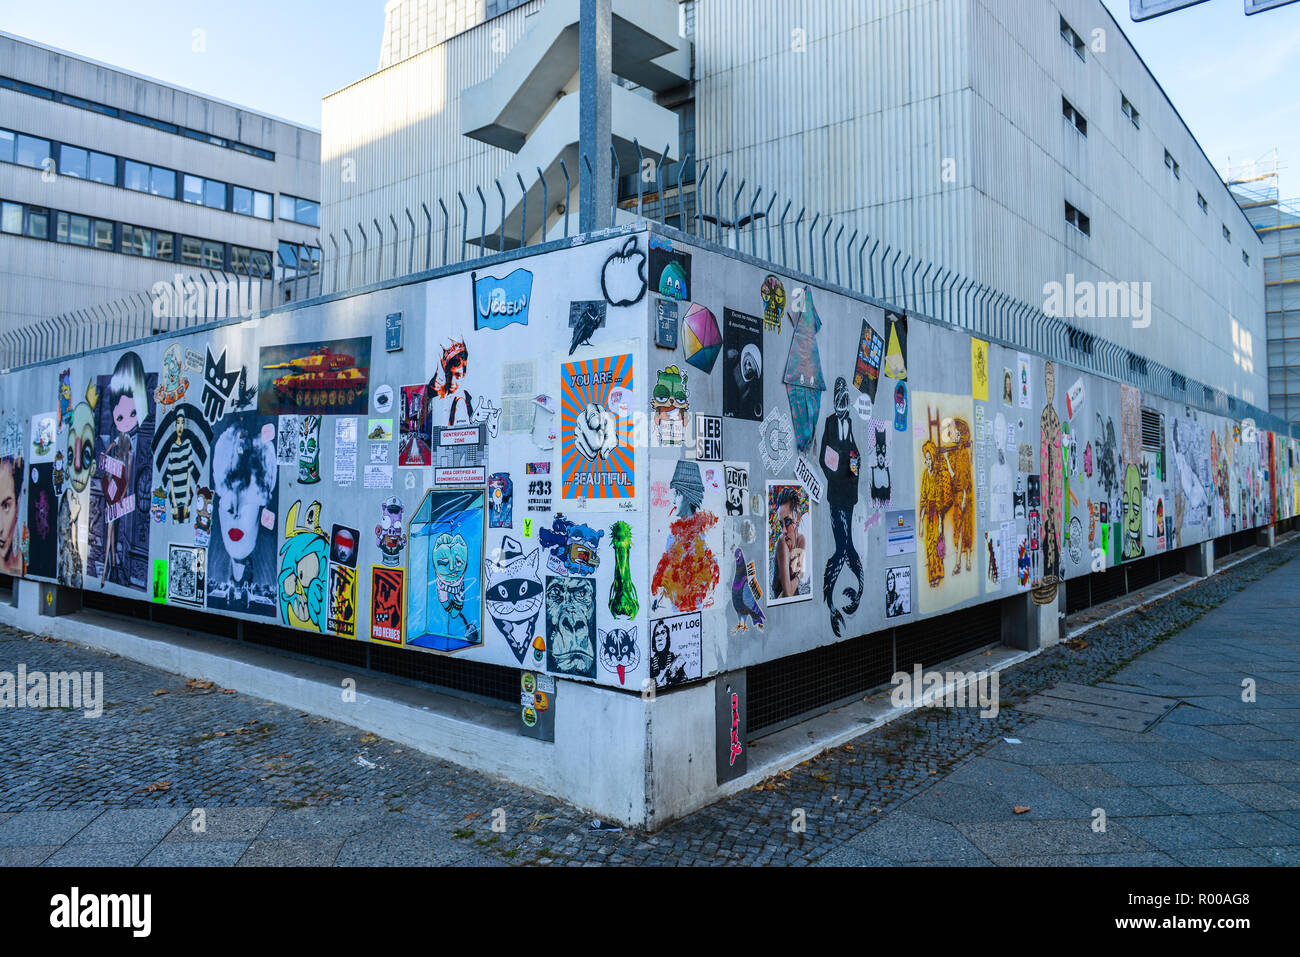 Paste up festival, German opera, crooked street, Zillestrasse, Charlottenburg, Berlin, Germany, Paste-up-Festival, Deutsche Oper, Krumme Strasse, Deut Stock Photo